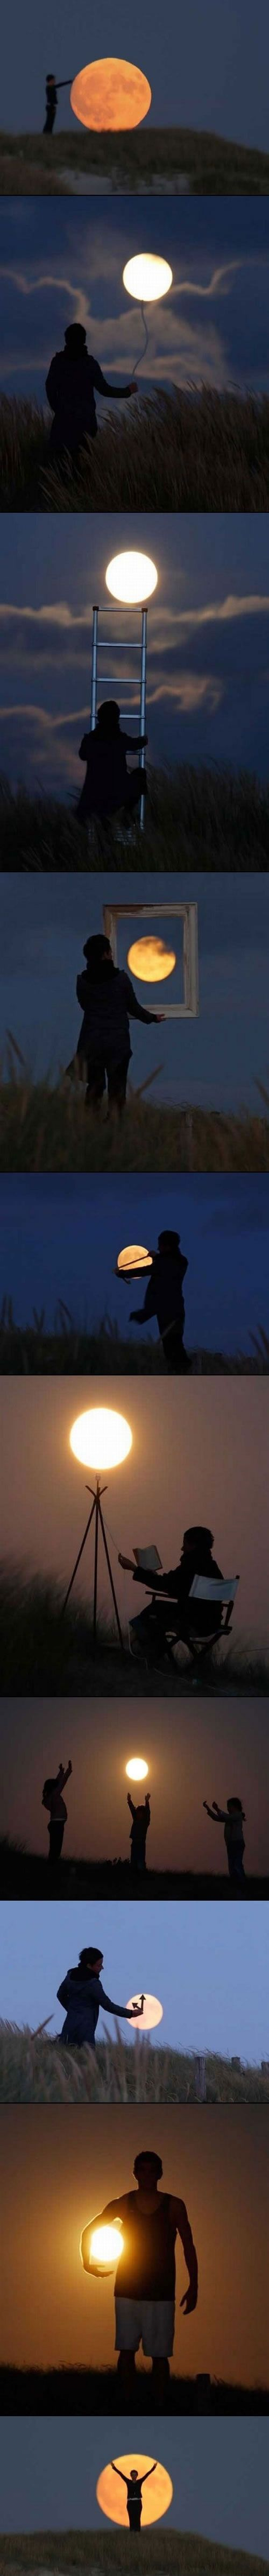 So cool!!! Playing with the moon!